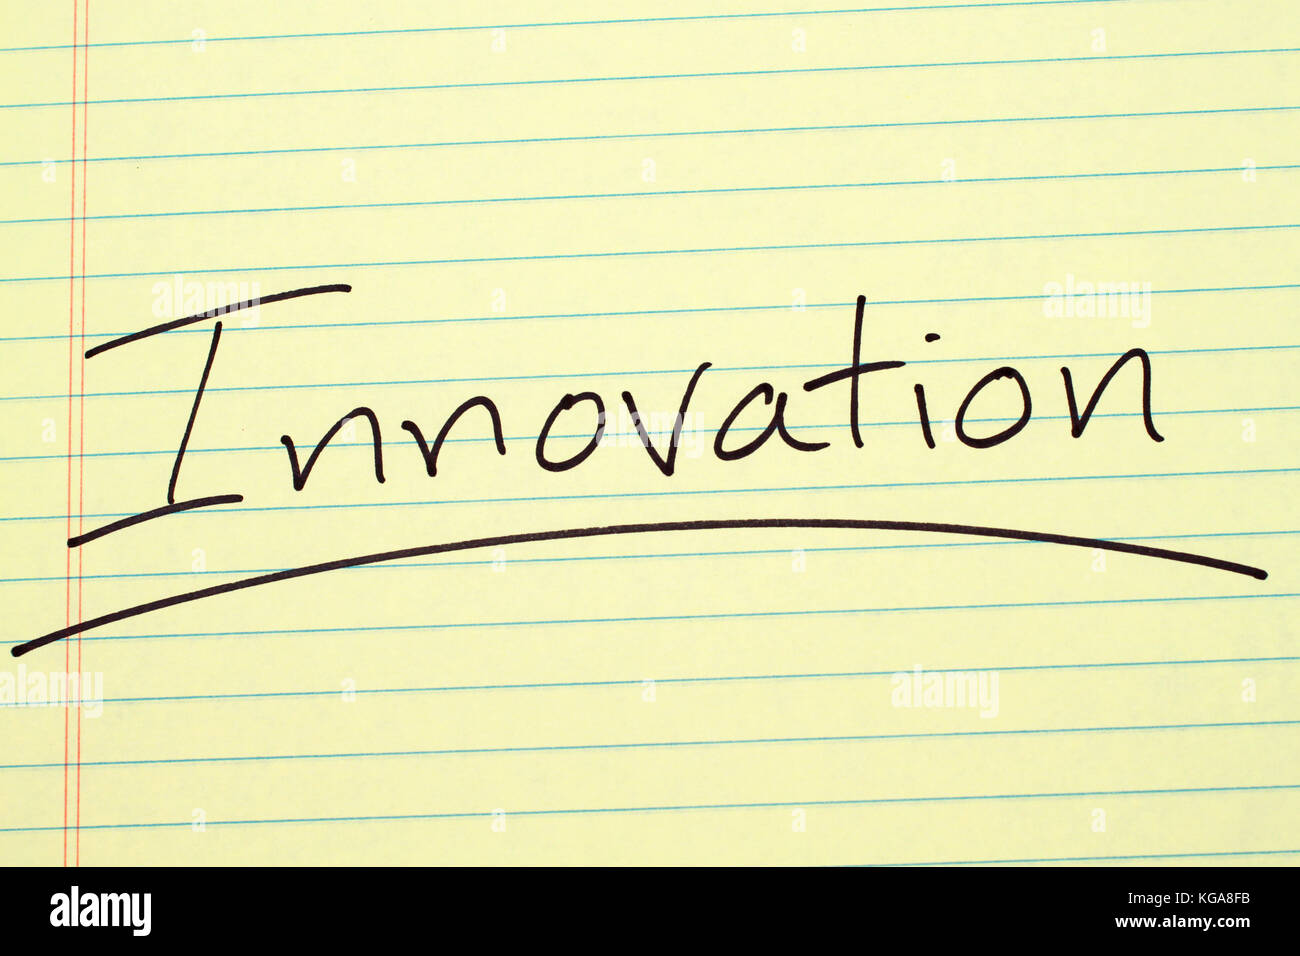 The word 'Innovation' underlined on a yellow legal pad - Stock Image